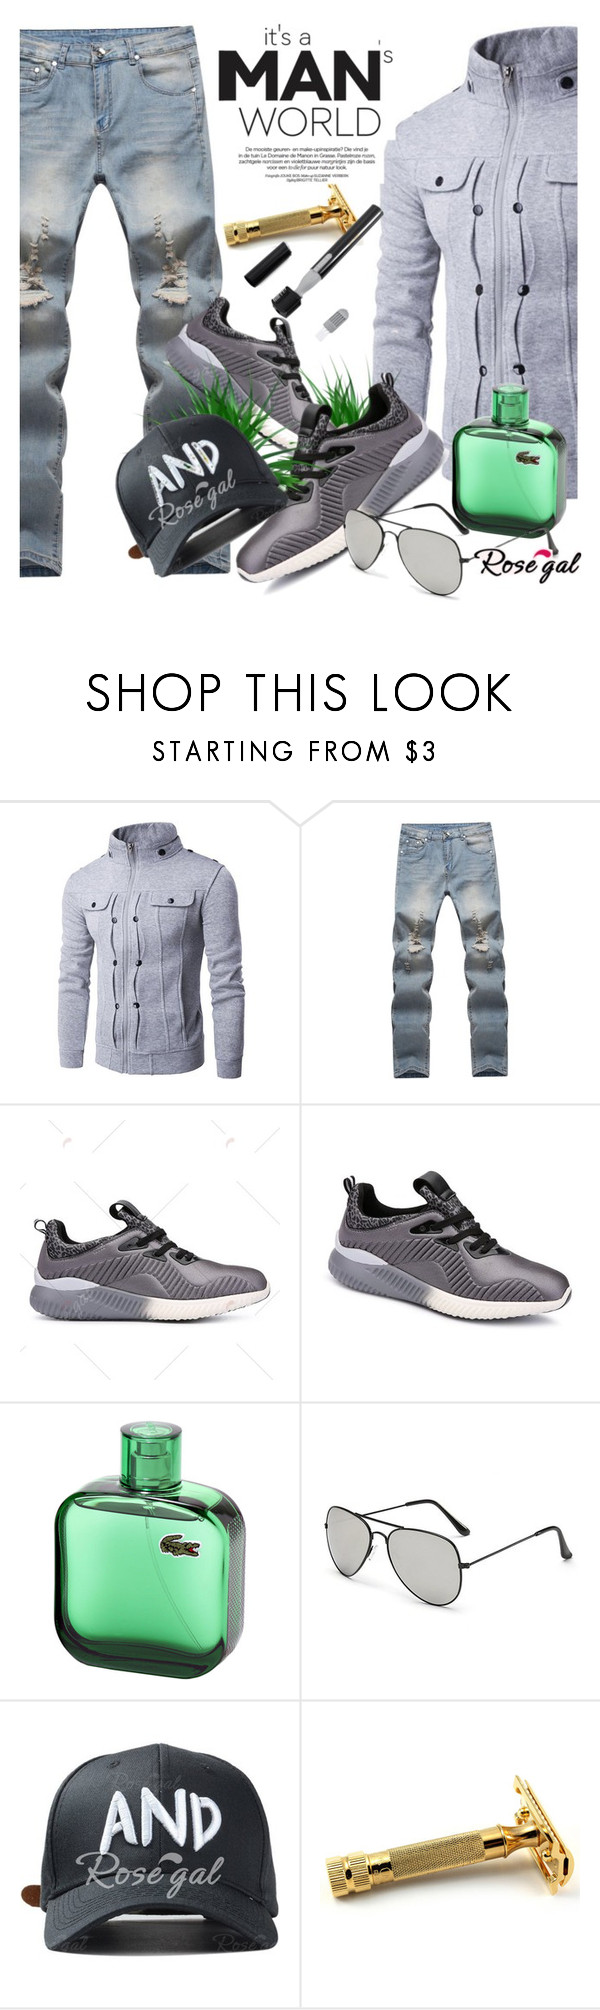 """Win $20 Cash from Rosegal!"" by selmir ❤ liked on Polyvore featuring men's fashion and menswear"